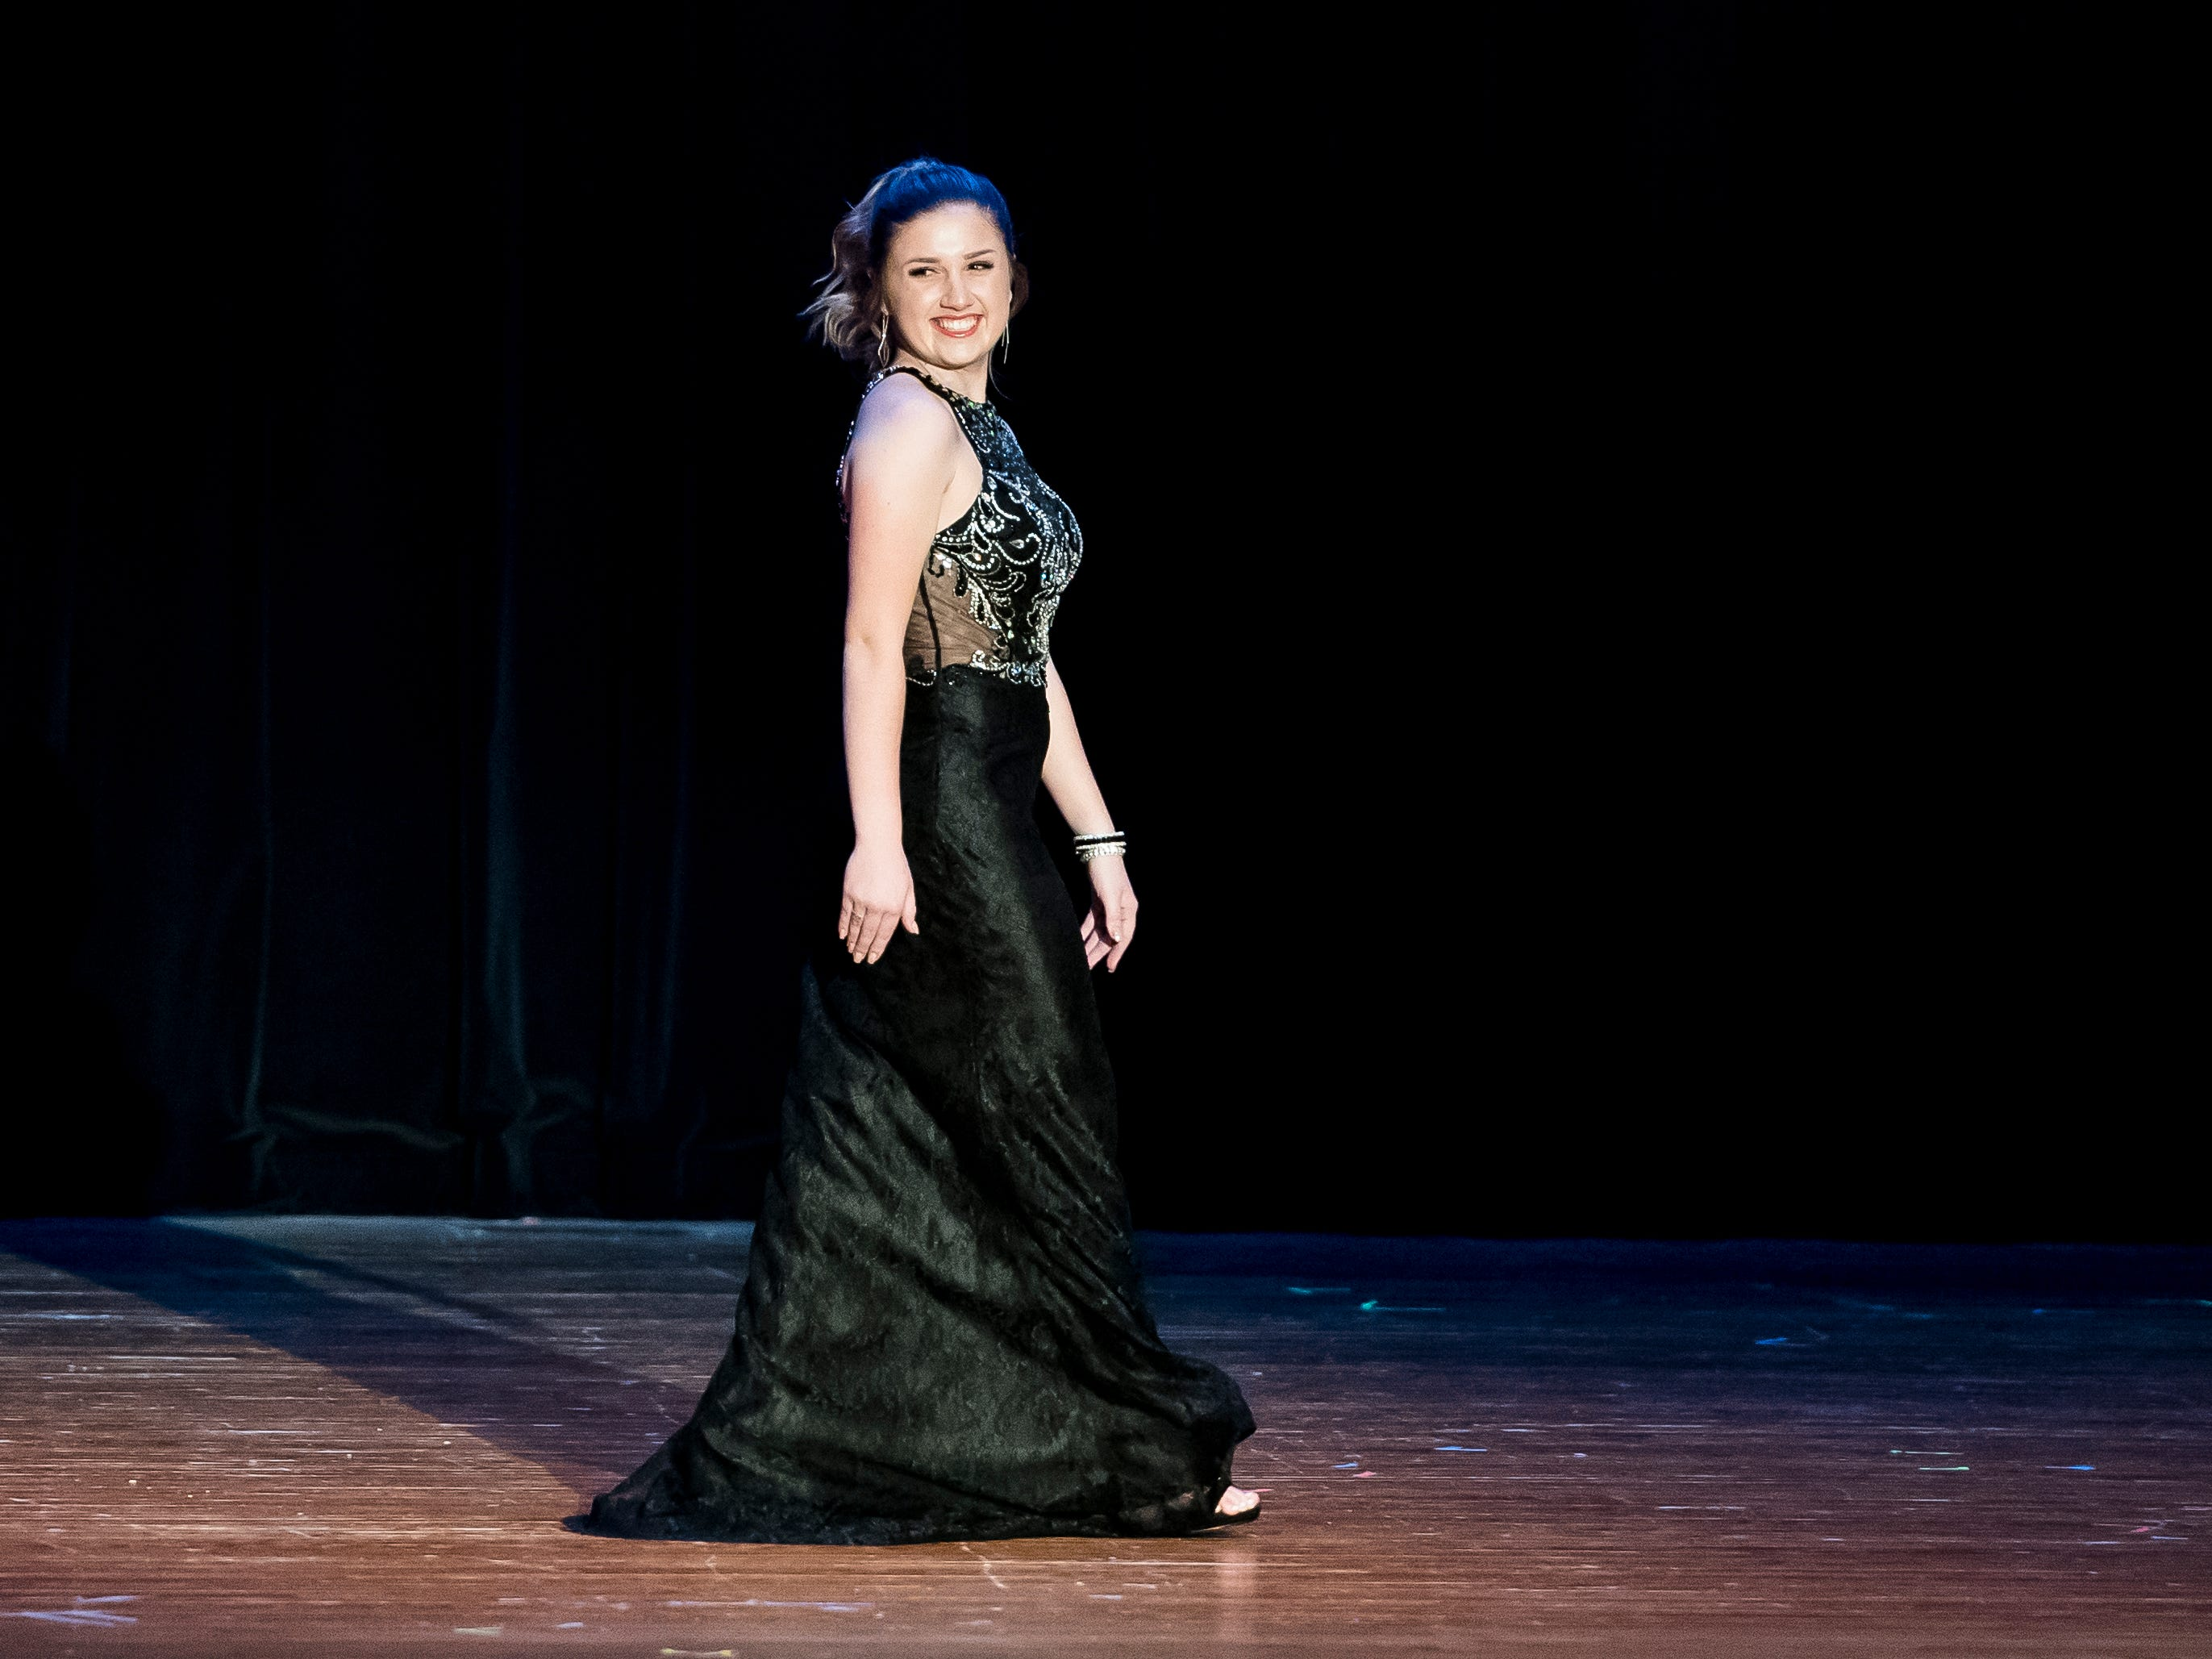 Hannah Nell walks on stage during the evening gown competition in the 50th Miss Hanover Area pageant on Monday, October 22, 2018.